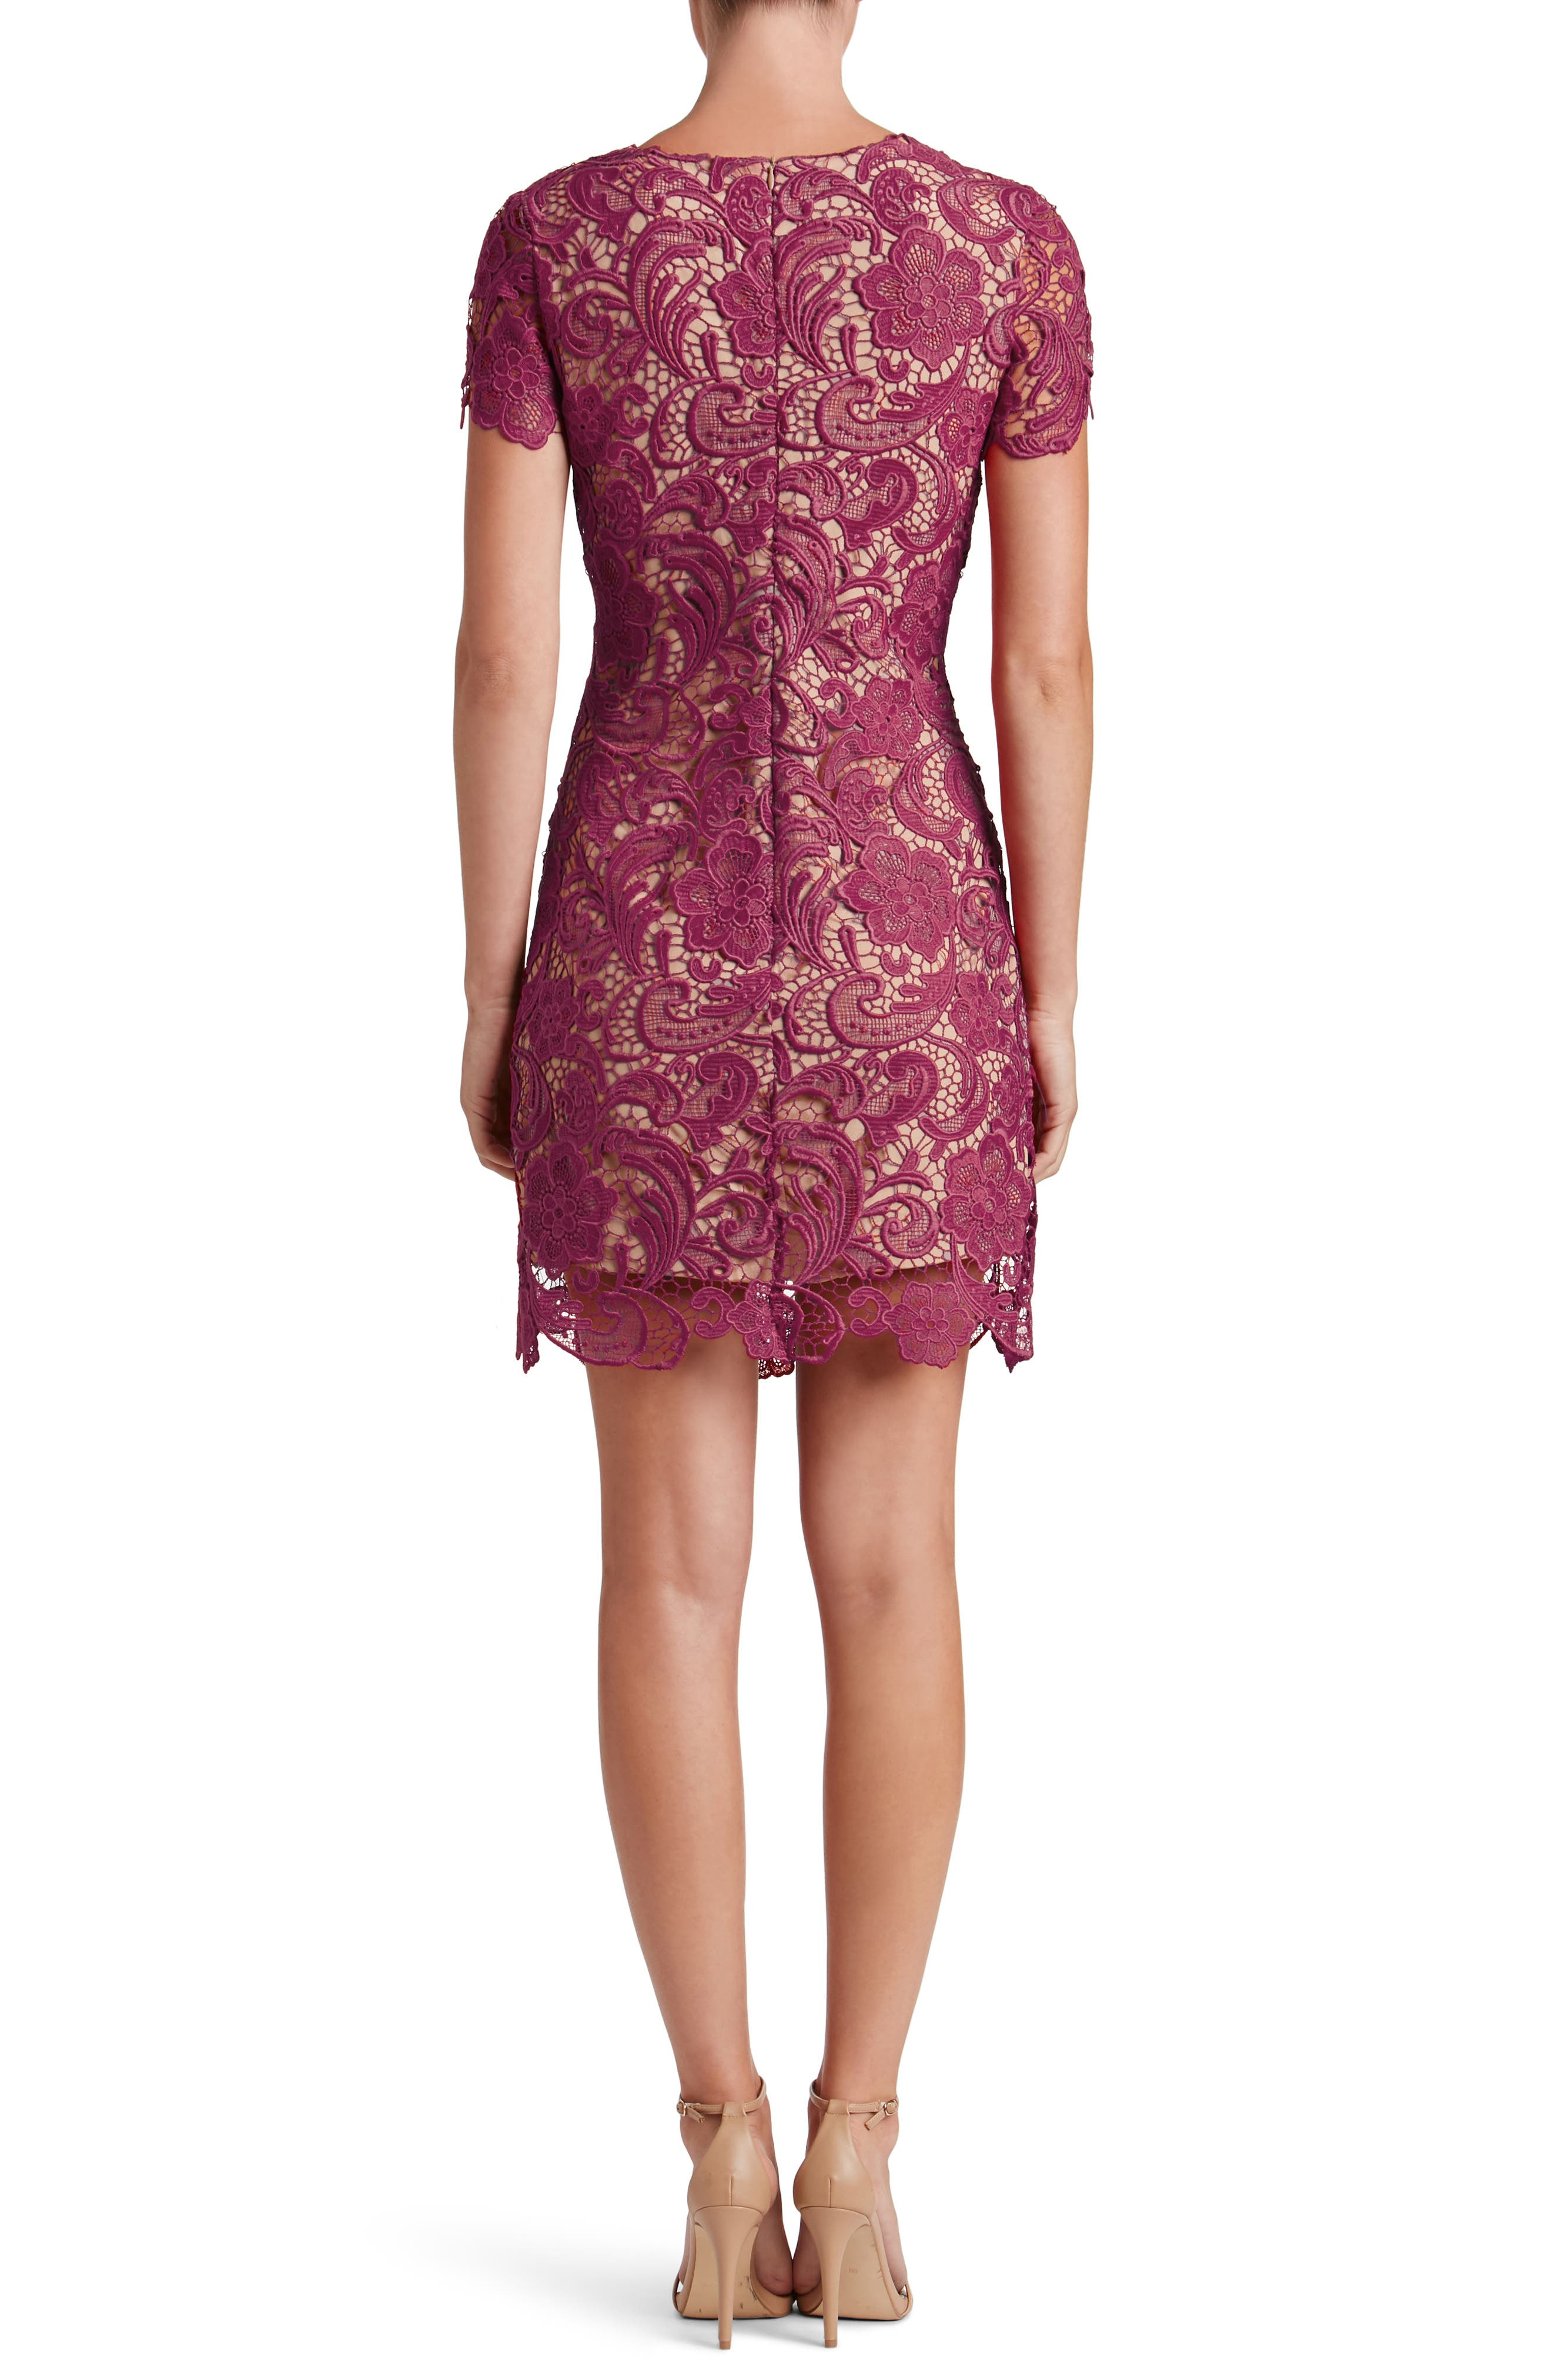 Anna Crochet Lace Sheath Dress,                             Alternate thumbnail 3, color,                             Mulberry/ Nude